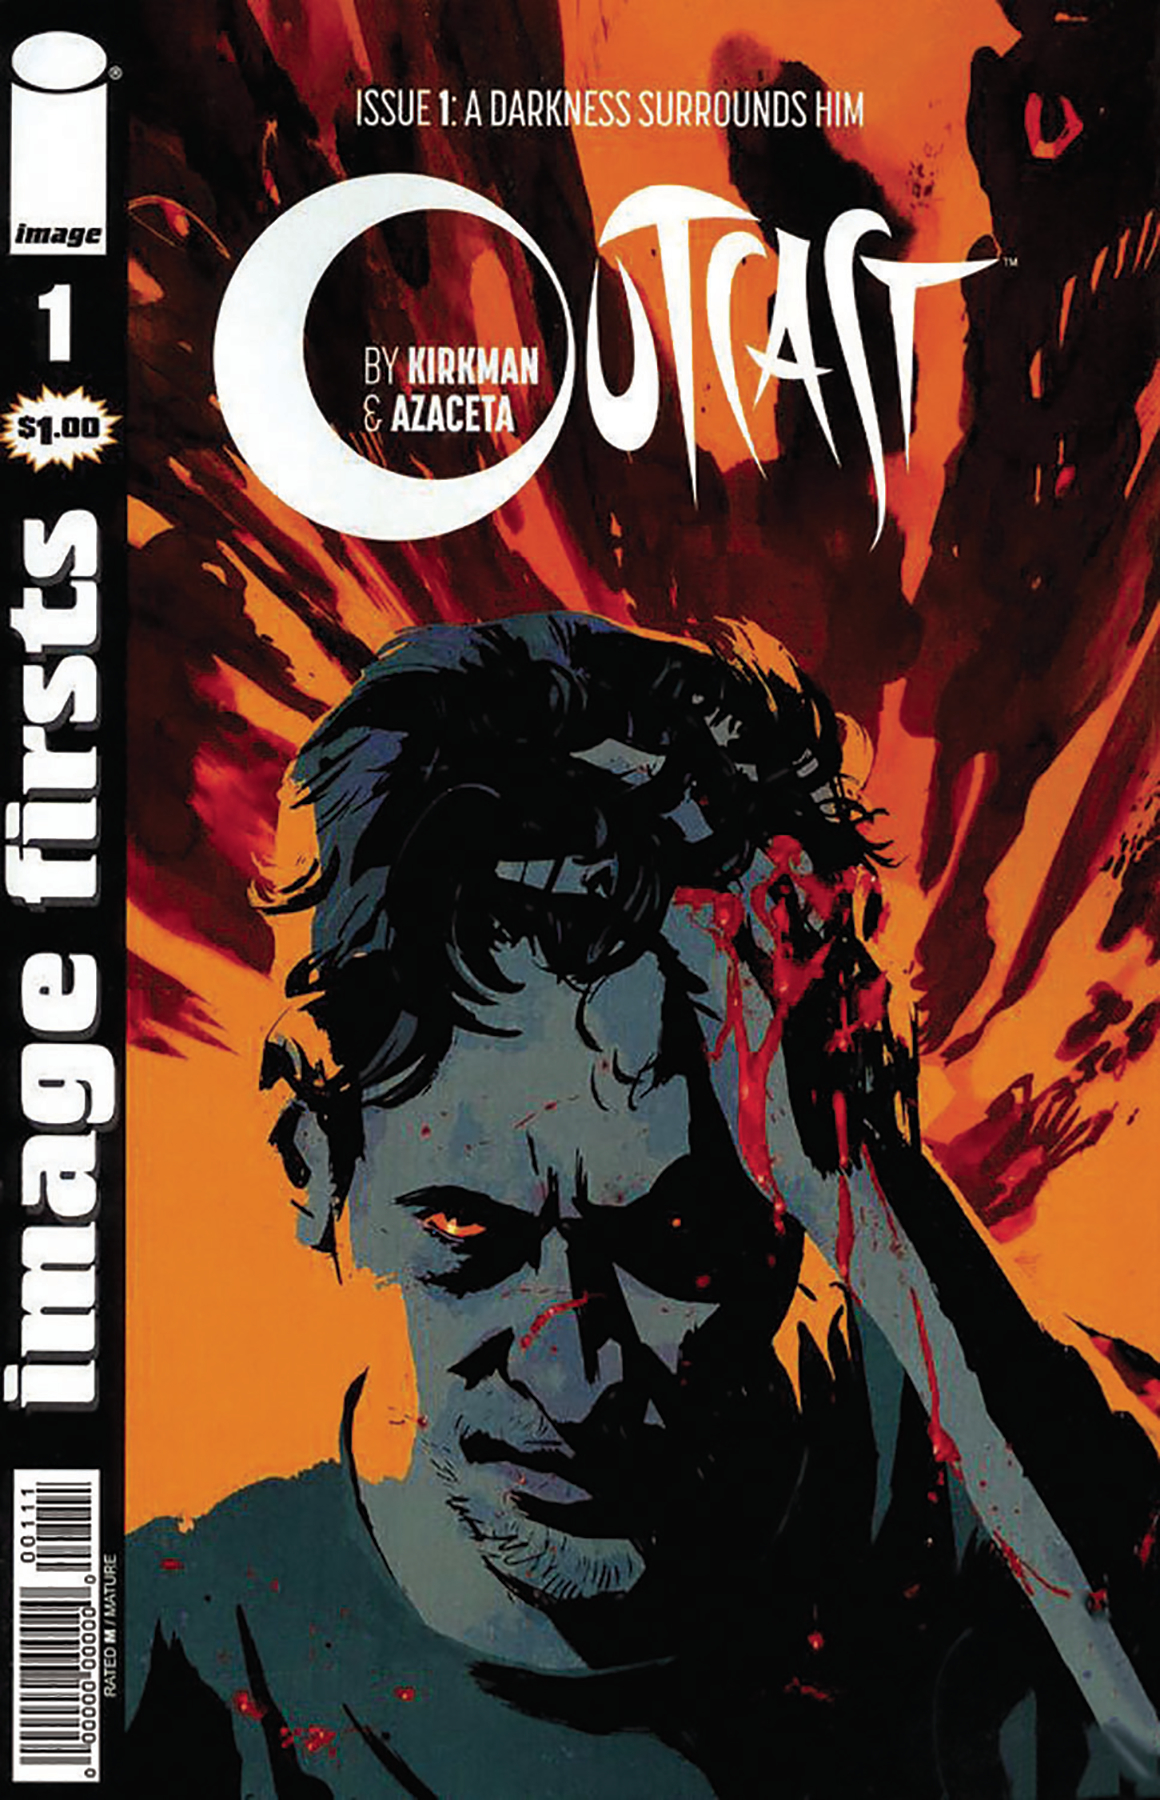 IMAGE FIRSTS OUTCAST #1 (O/A) (MR)